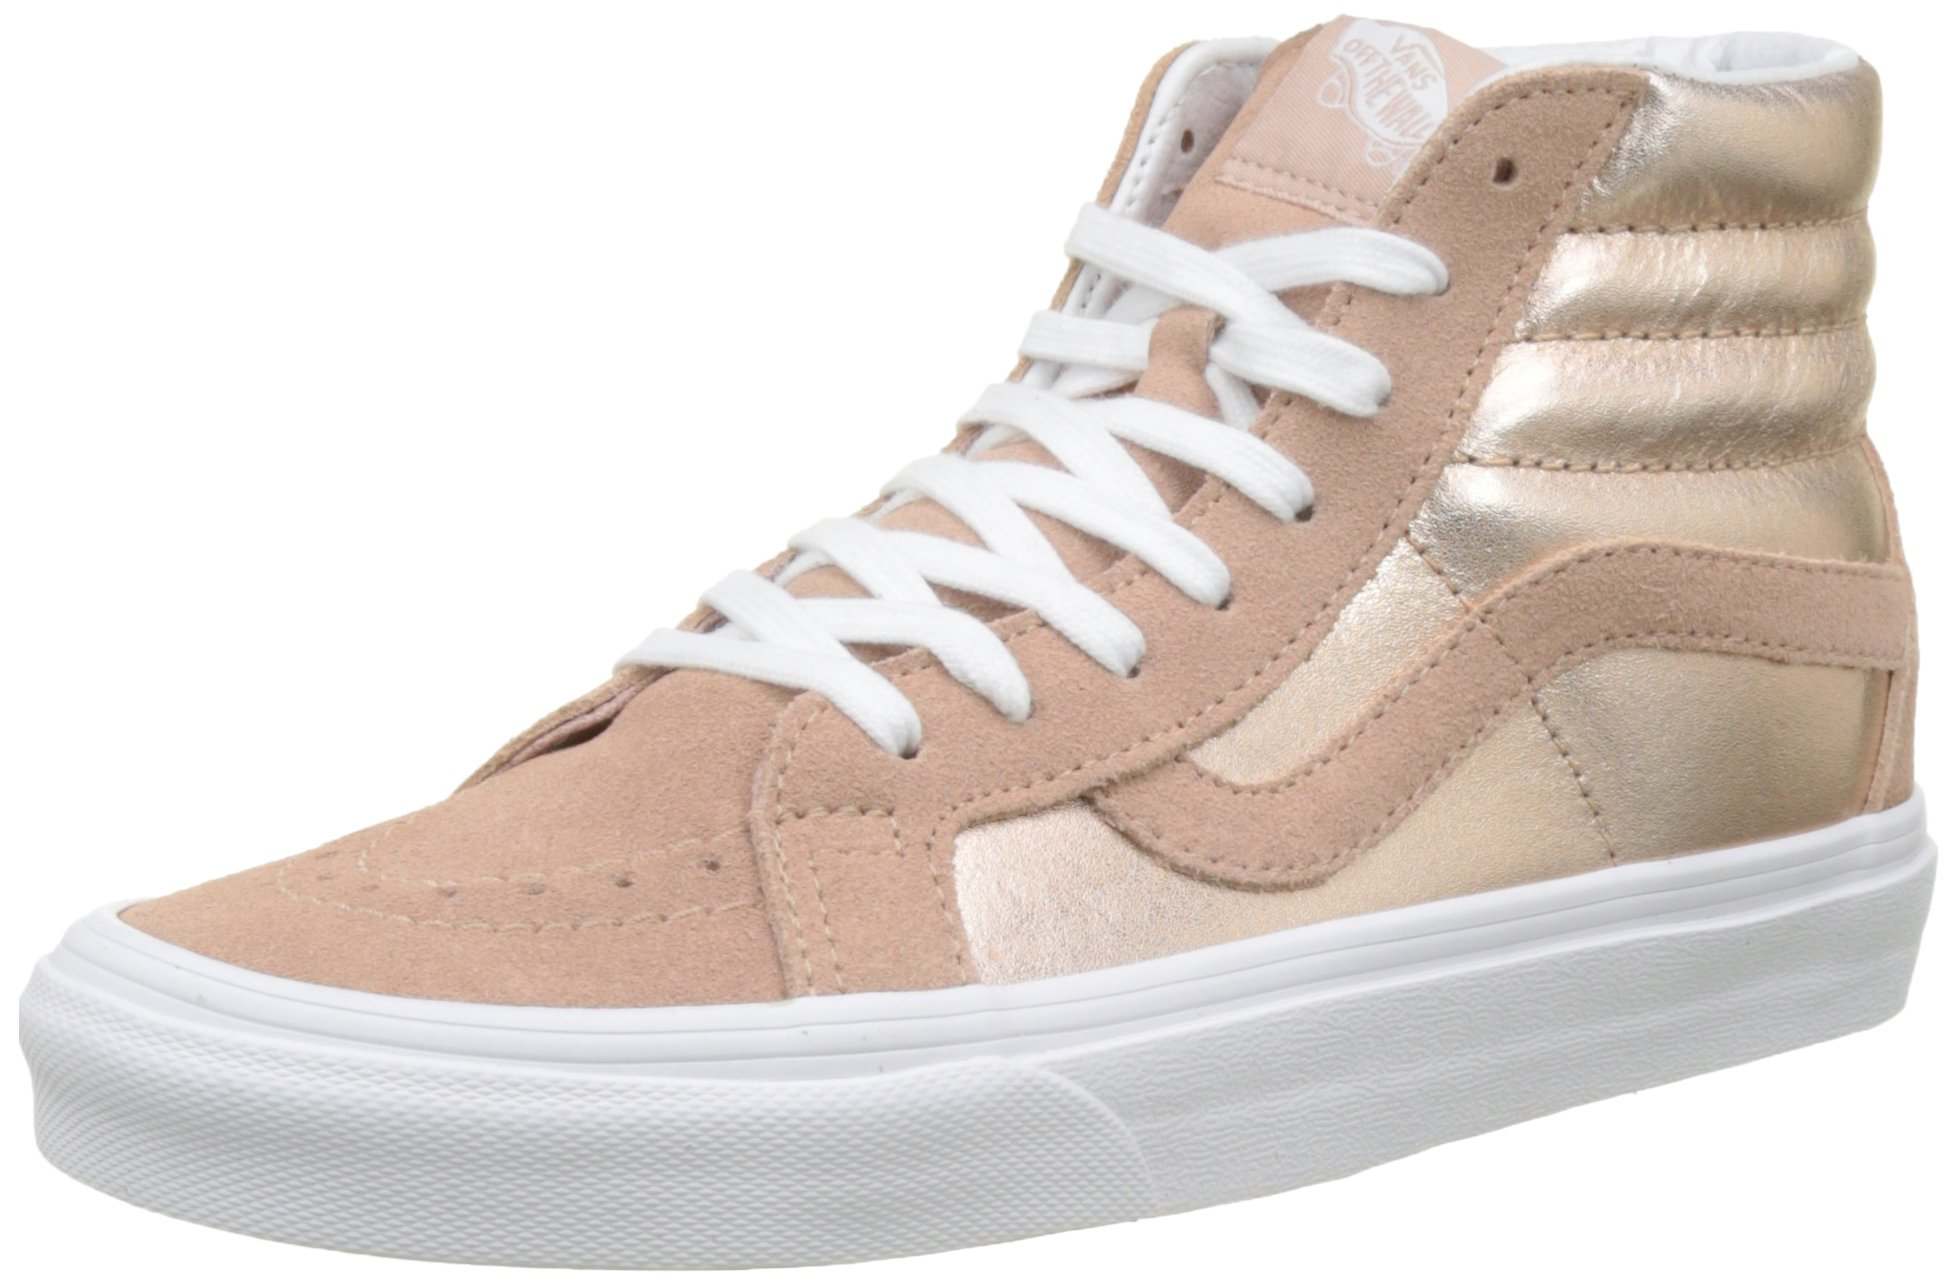 d365bc4fc1 Galleon - Vans Unisex 2-Tone Metallic SK8-Hi Reissue Mahogany Rose True  White Sneaker - 8